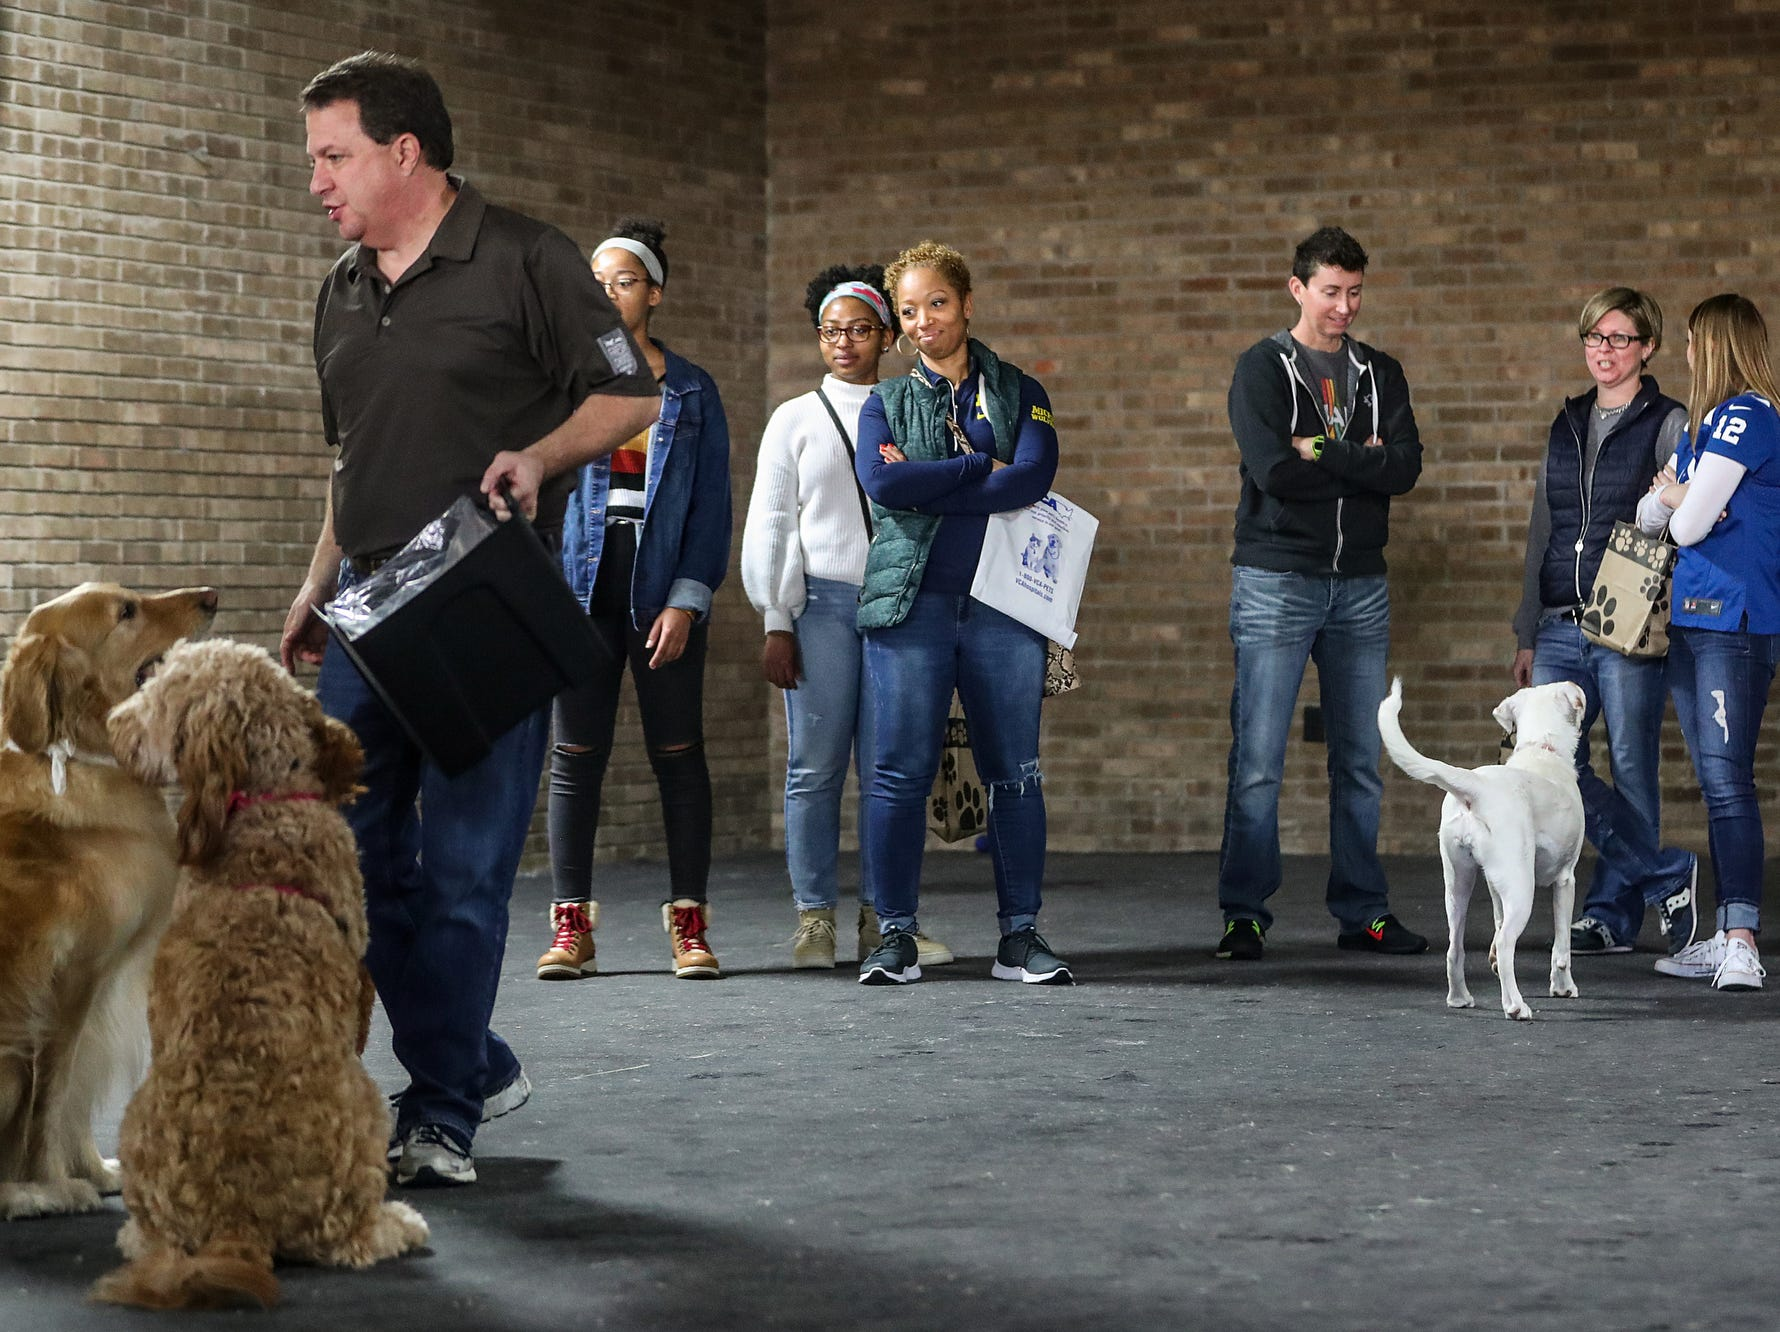 Owners and friends watch as dogs romp around during the grand opening of Indy's Indoor Bark Park in Indianapolis, Saturday, Jan, 5, 2019. The large indoor space offers owners a place to exercise their dogs regardless of the weather. Membership options include single-day, multi-day and annual passes.